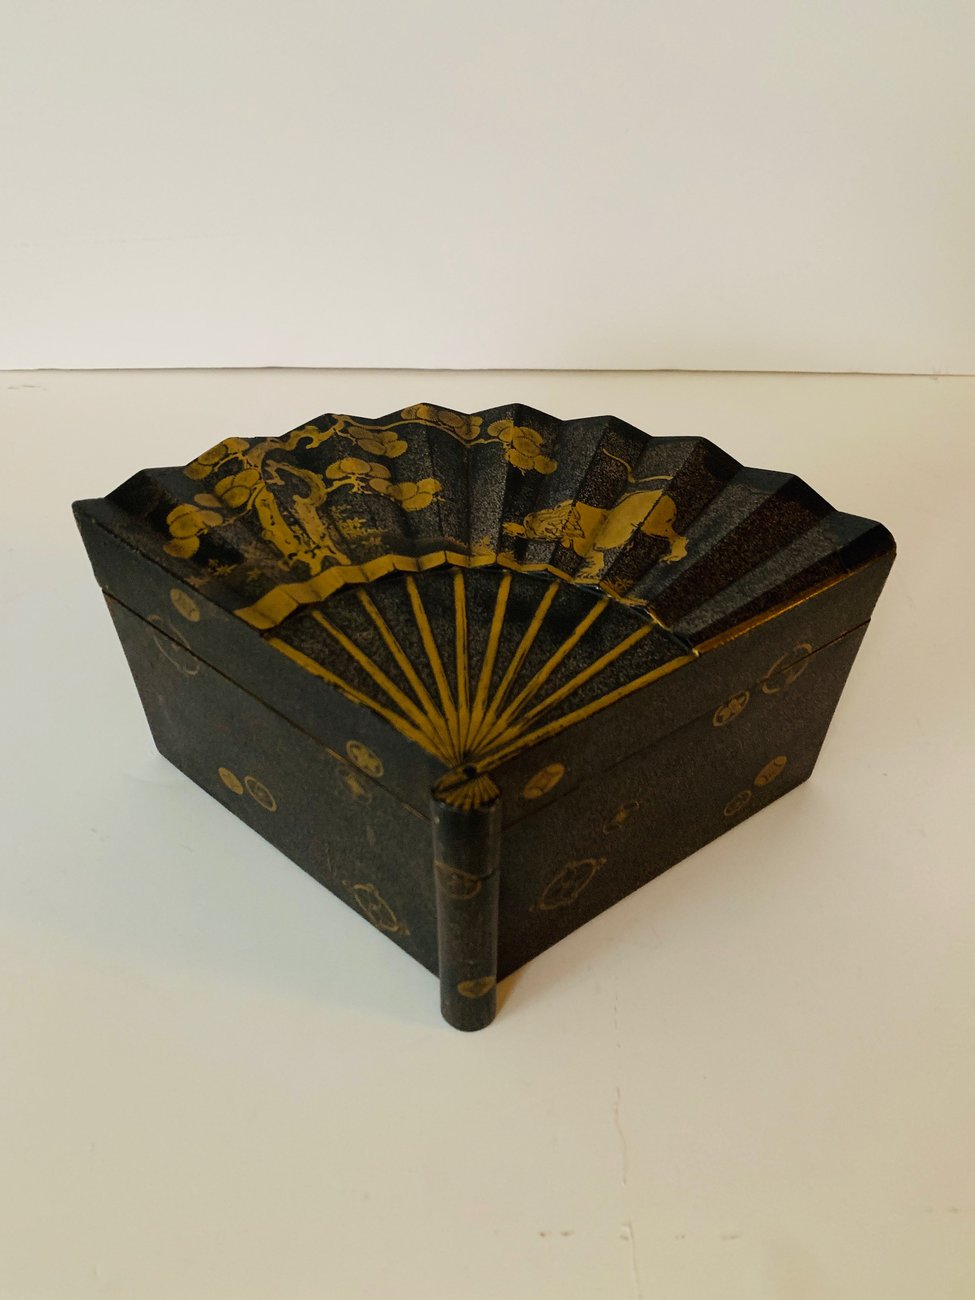 Preview image for A Japanese Lacquer Box of Inro-Buta-Zukuri type in the form of a fan, decorated in nashijiand gold hirakami on a black background